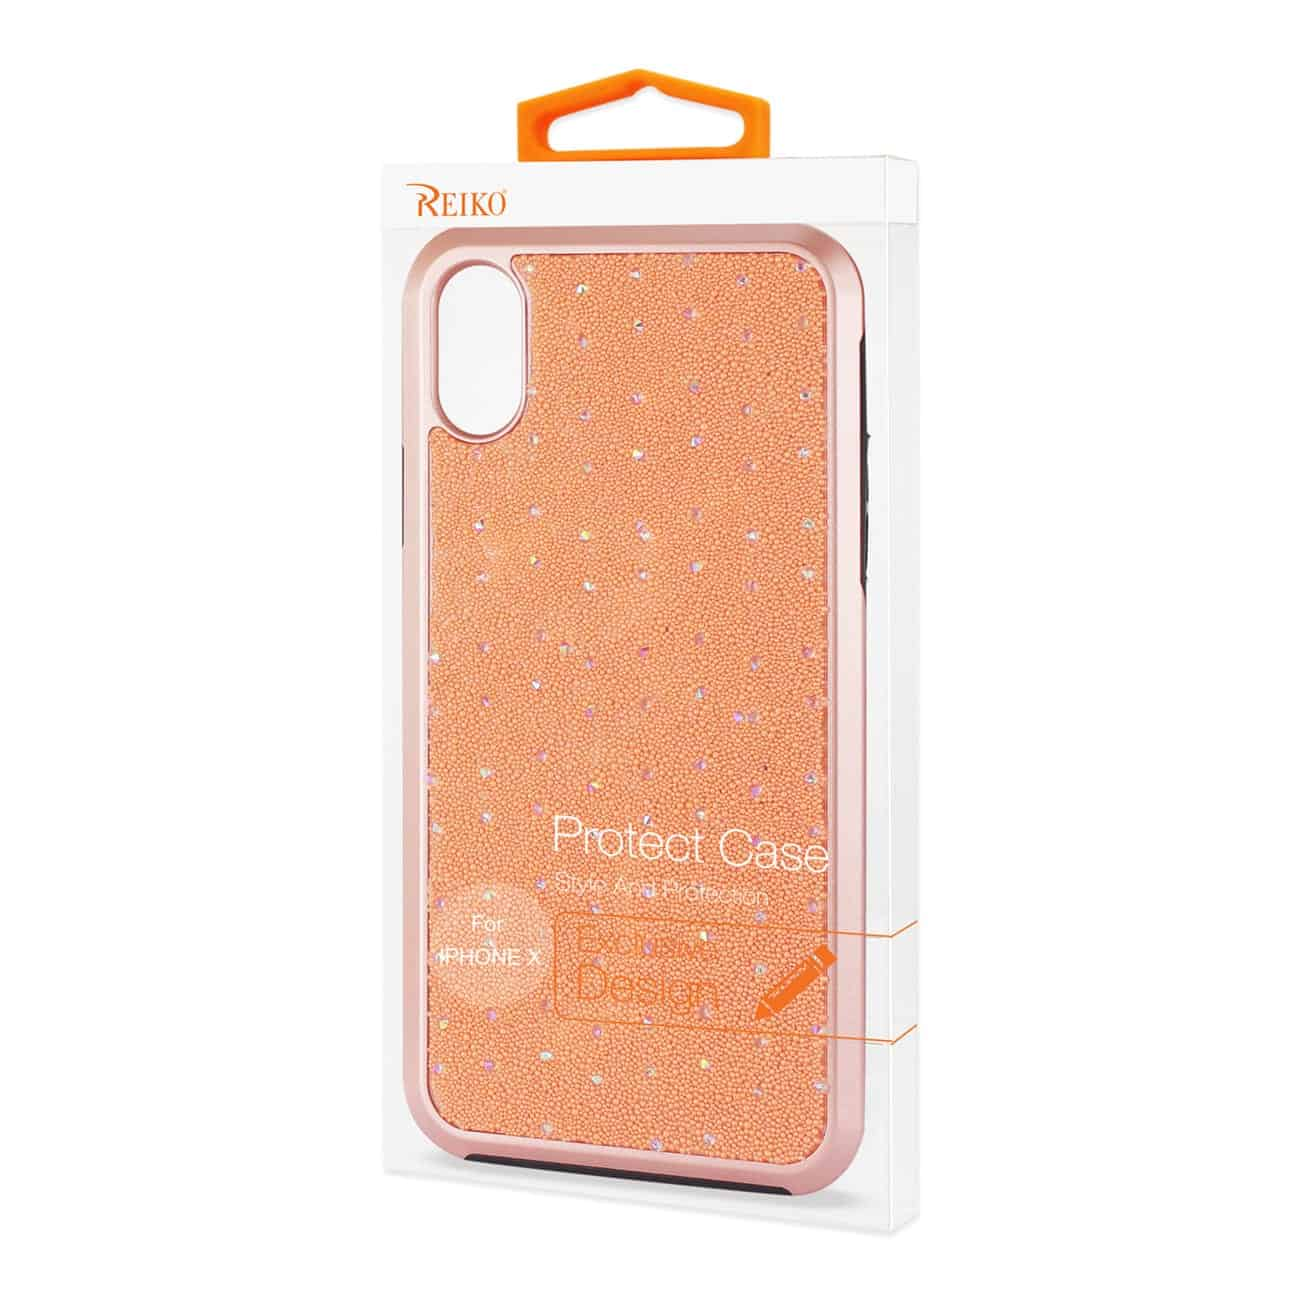 iPhone X Rhinestone TPU Protective Cover In Orange